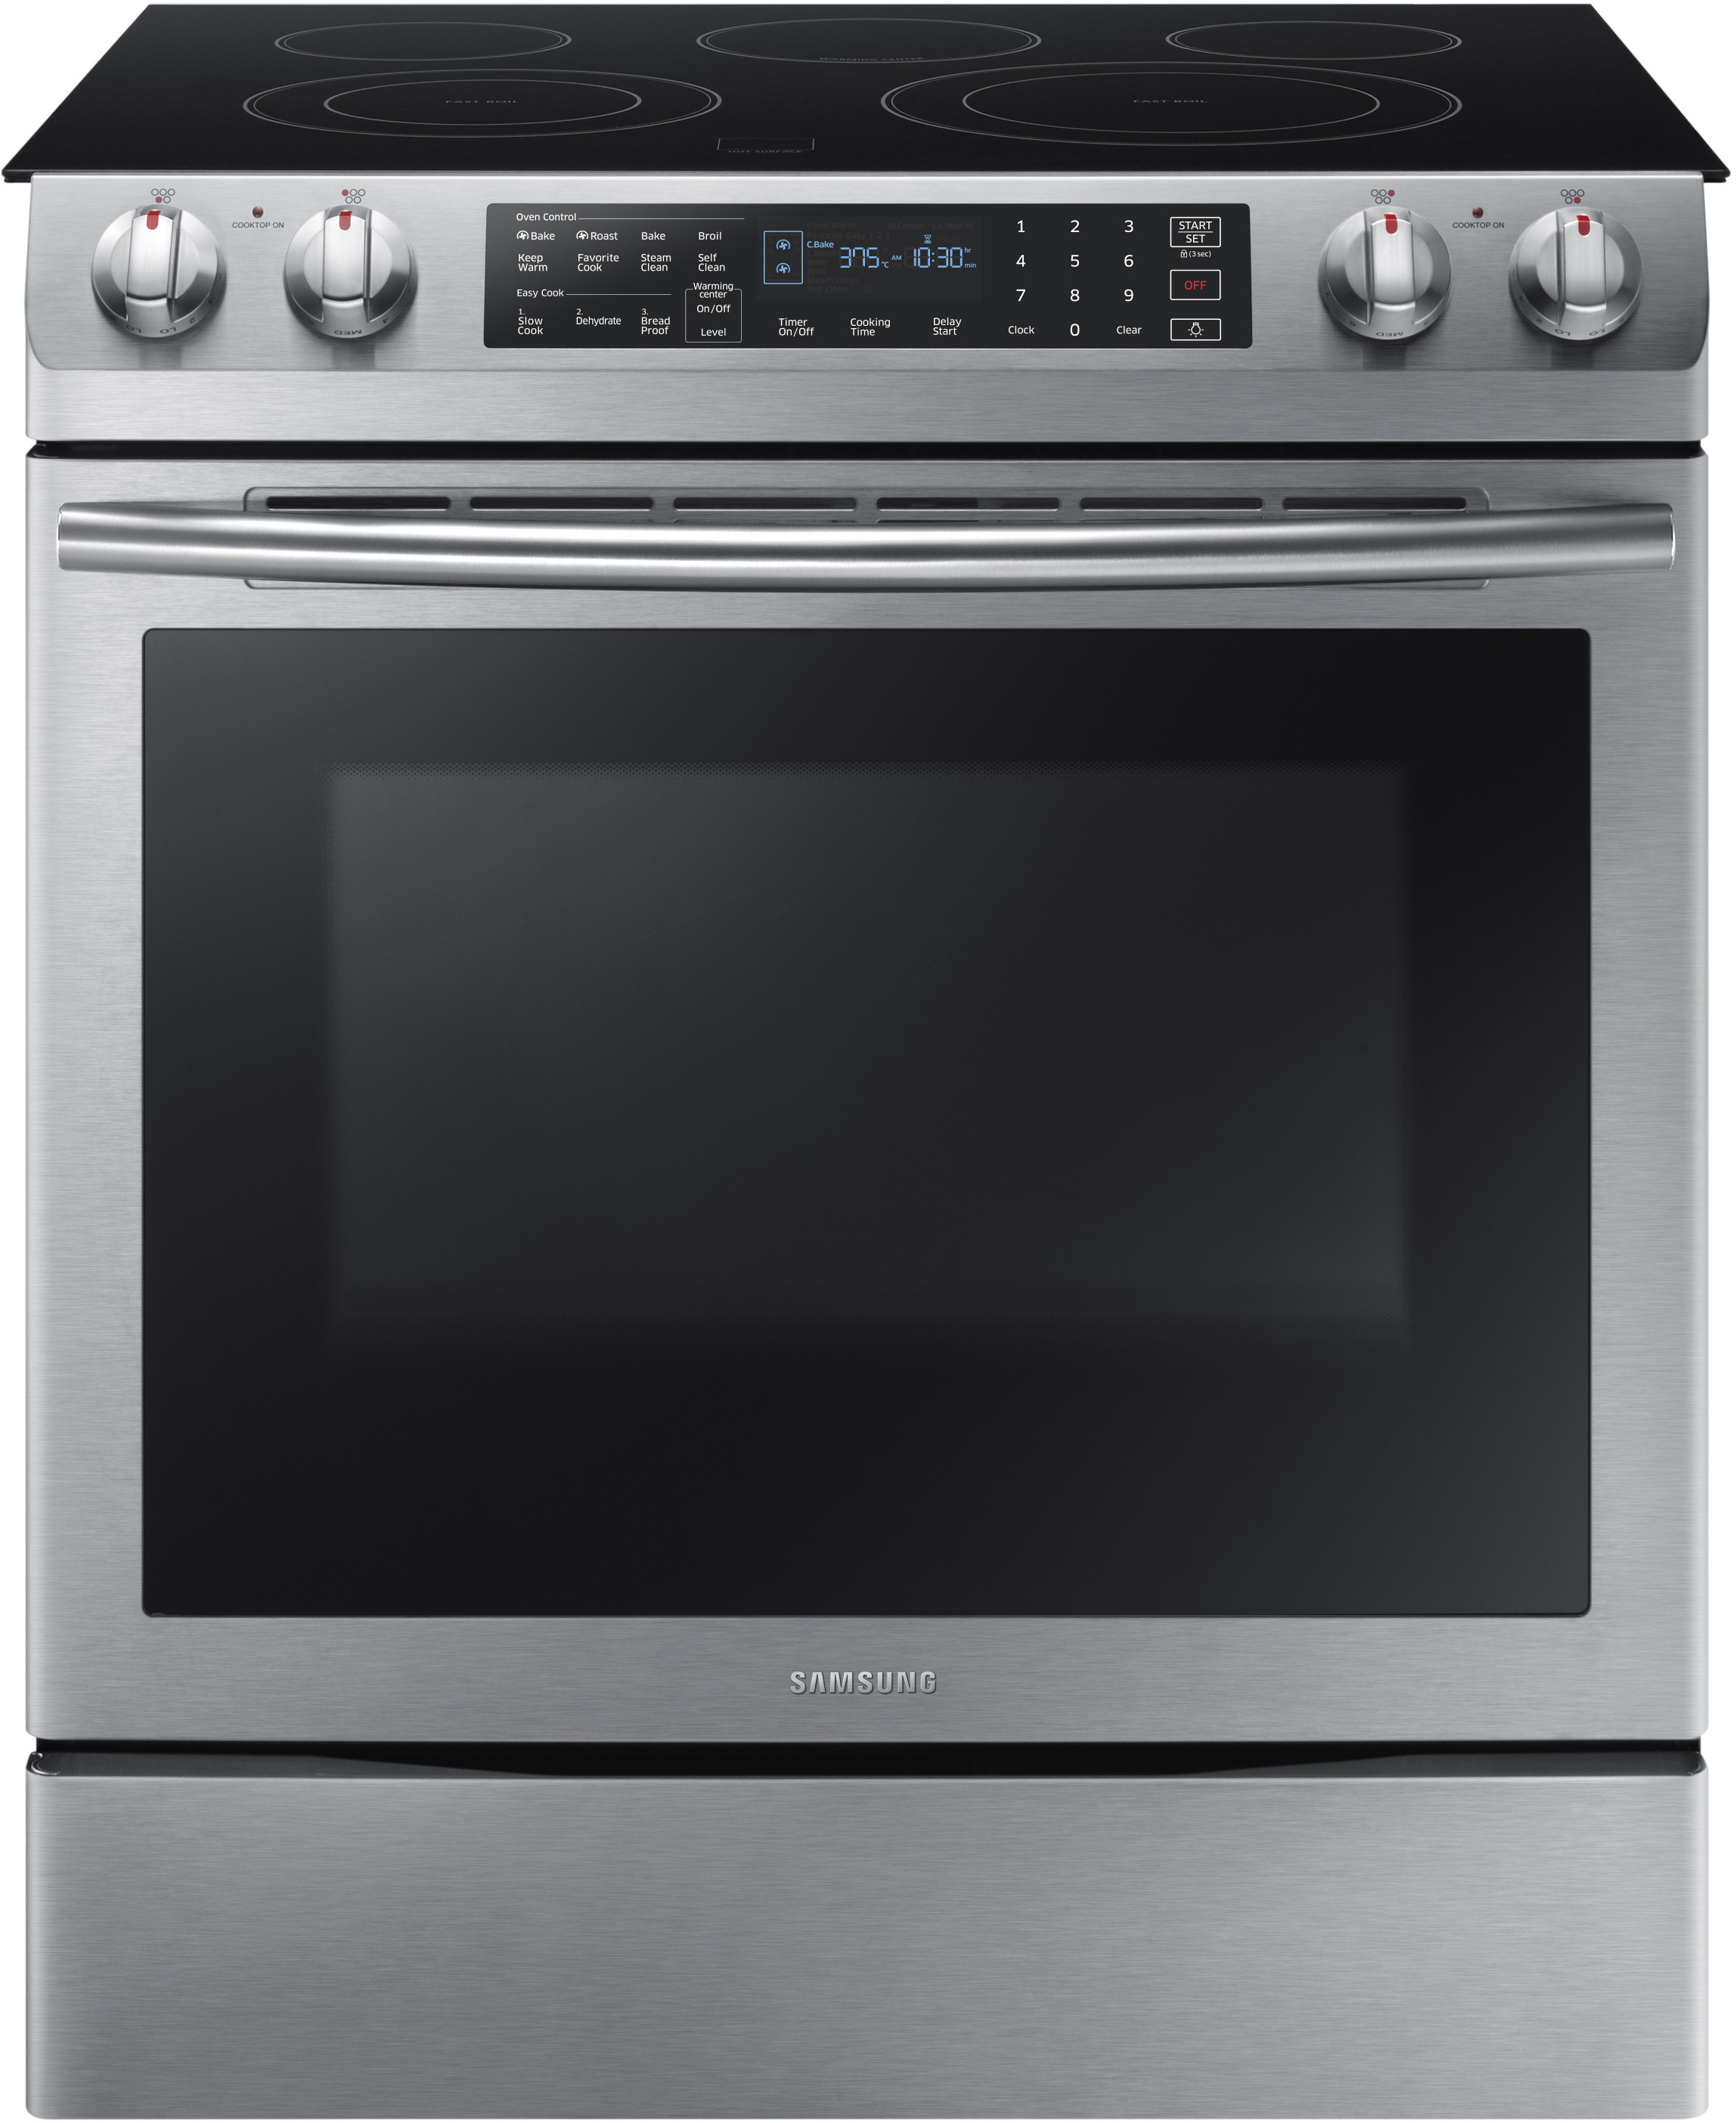 Samsung Ne58k9430ss 30 Inch Slide In Electric Range With 5 Smoothtop Elements 8 Cu Ft Dual Convection Fan Oven 2 Flexible Cooktop